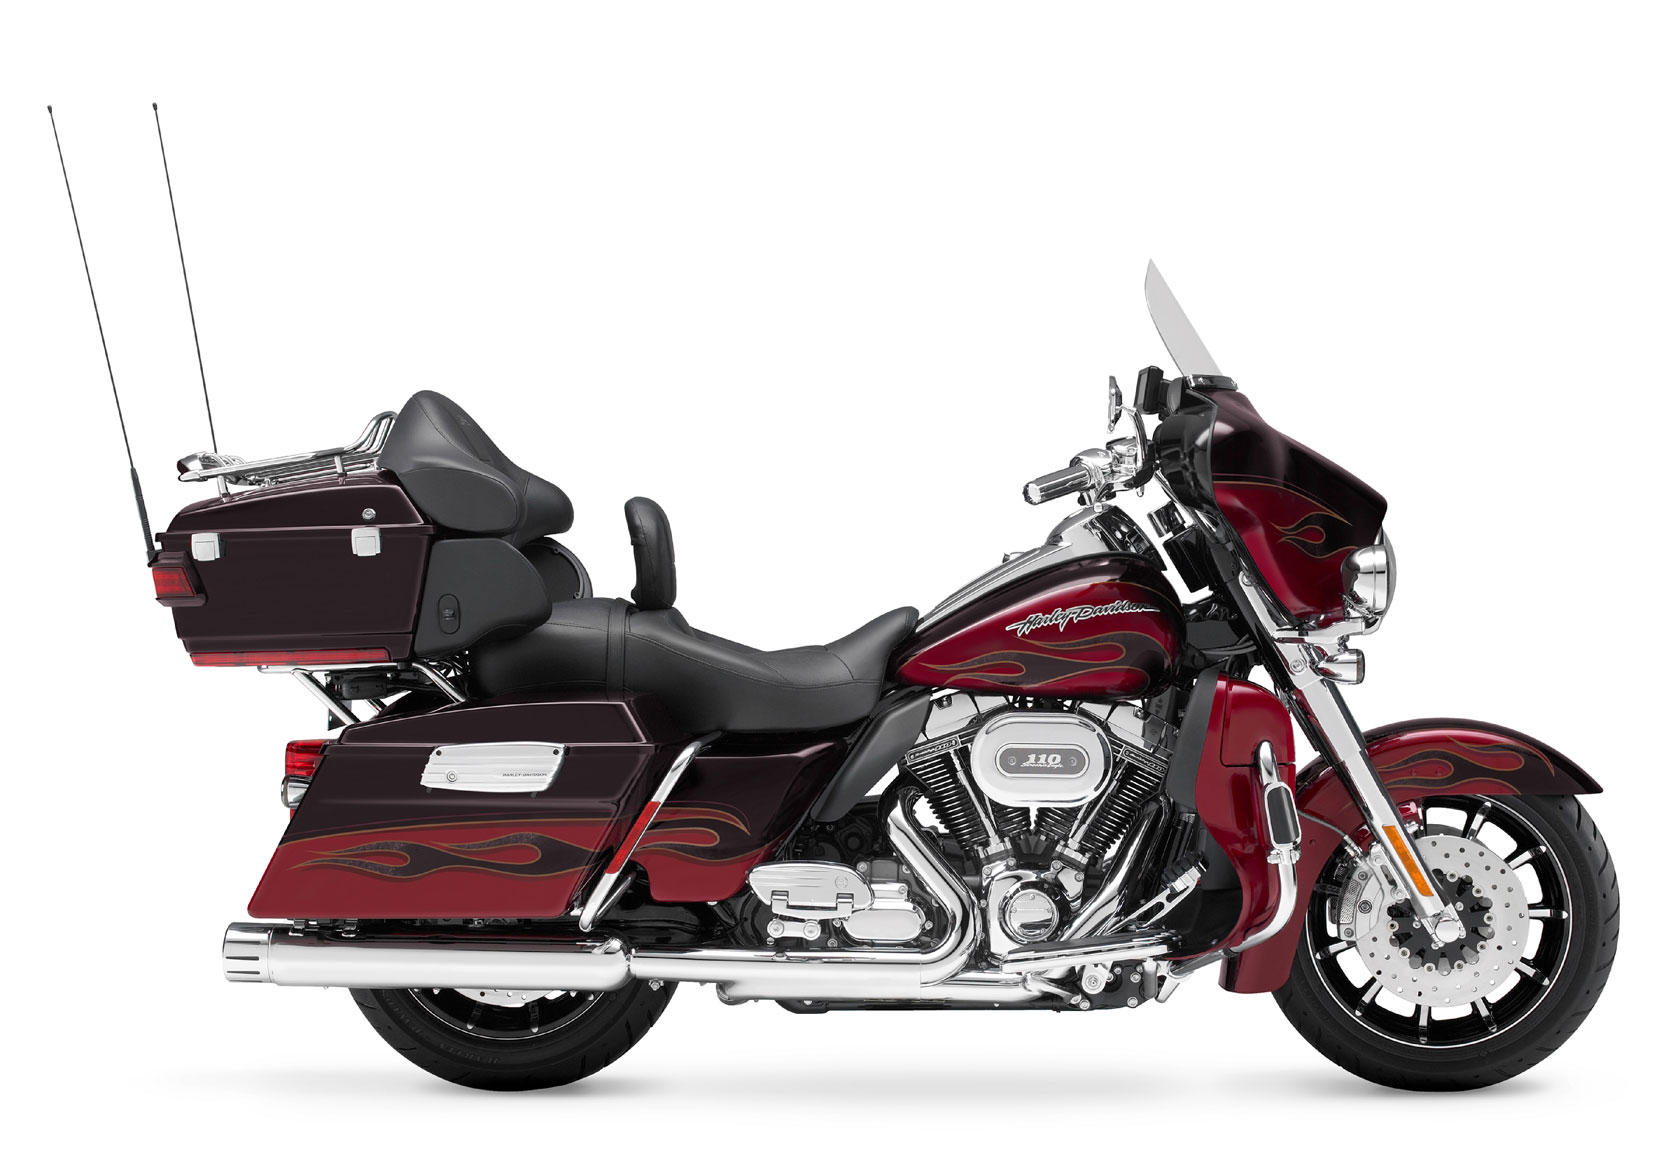 2011 Harley Davidson Flhtcuse6 Cvo Ultra Classic Electra Glide